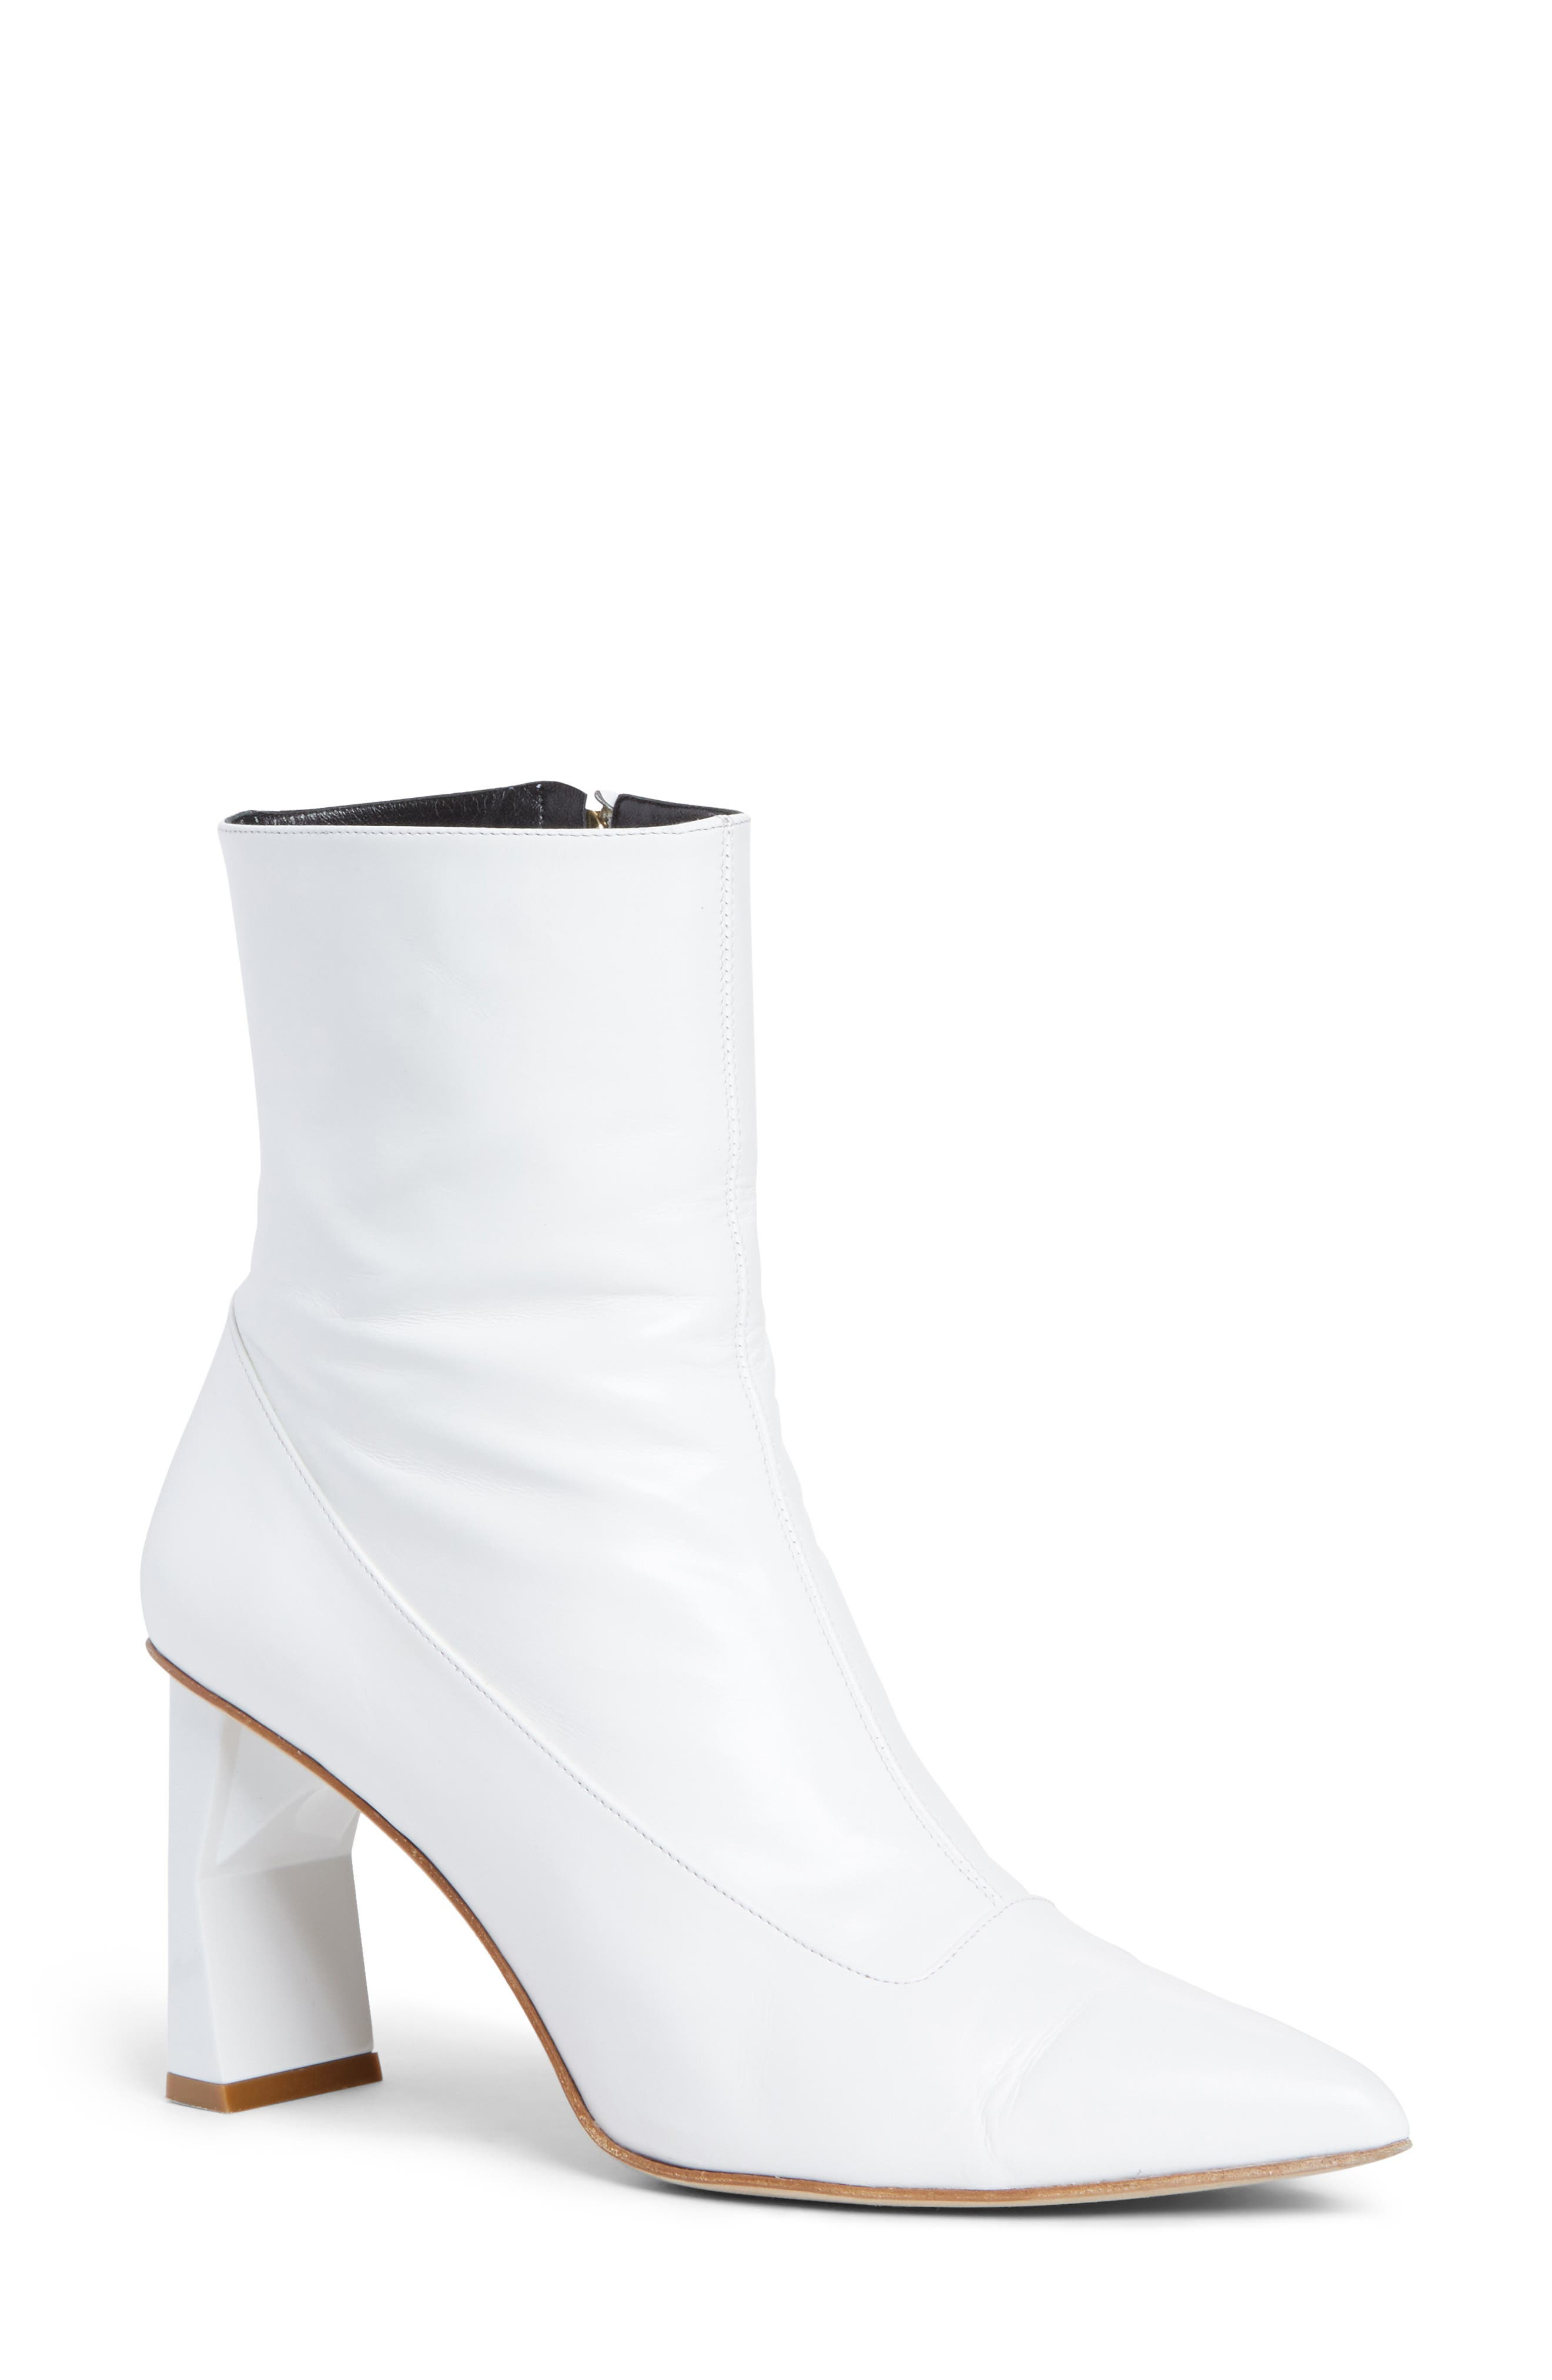 Alexis Pointy Toe Bootie,                         Main,                         color, 100